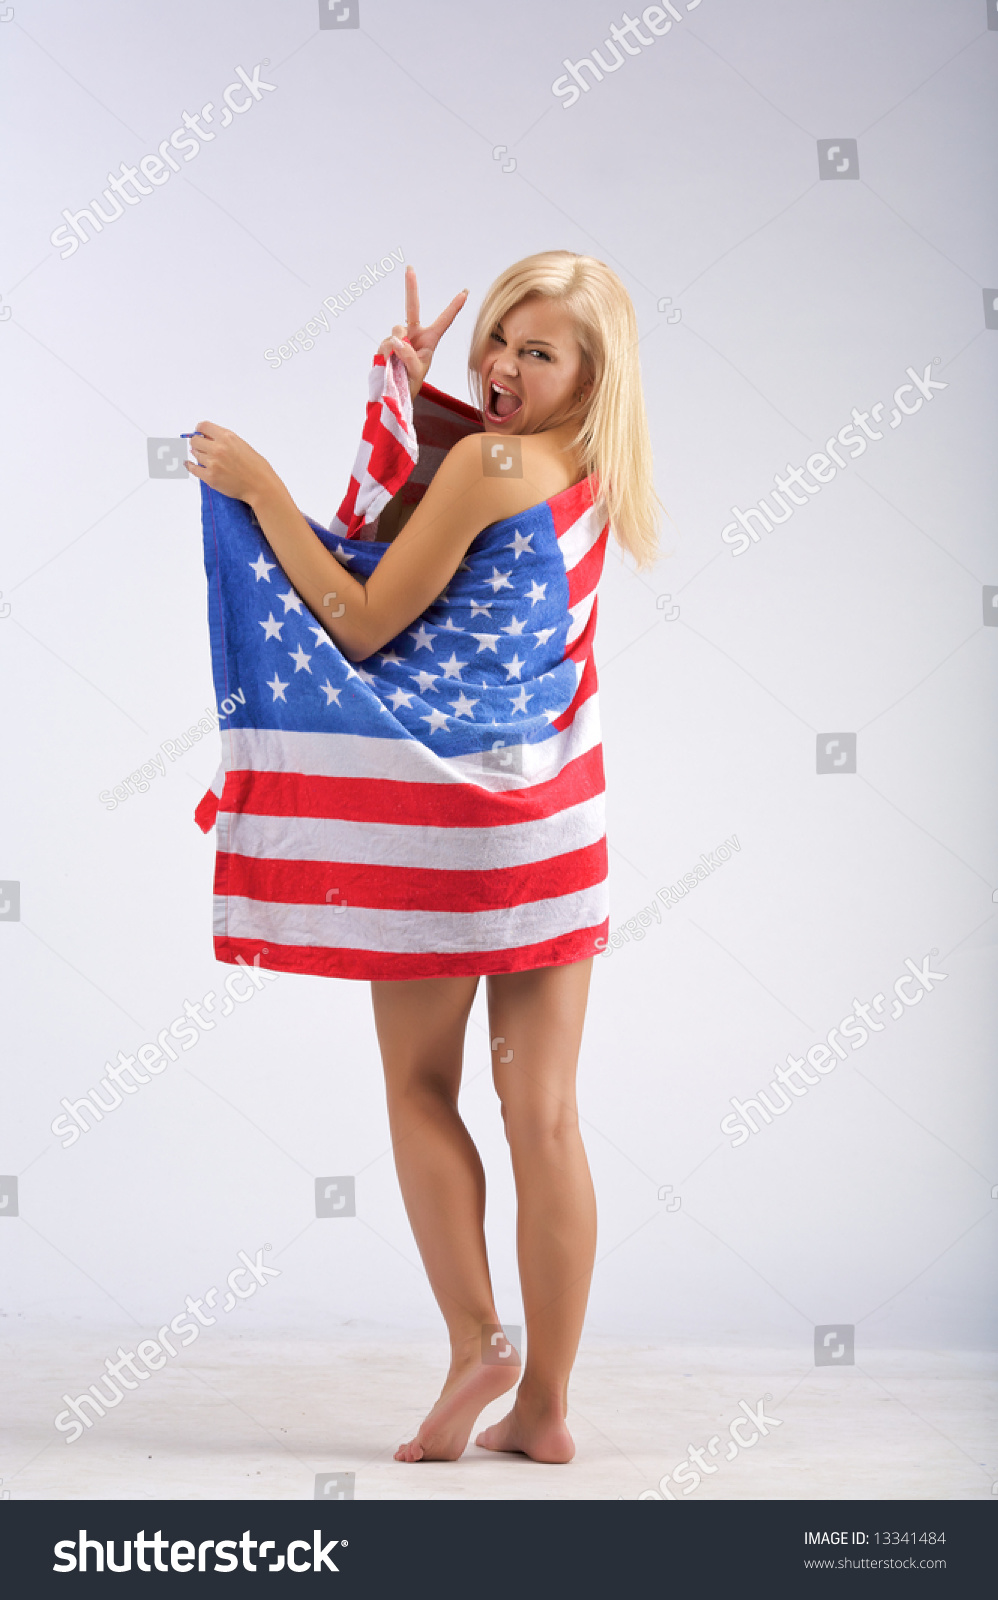 Naked Girl In The American Flag Stands And Shows Victory